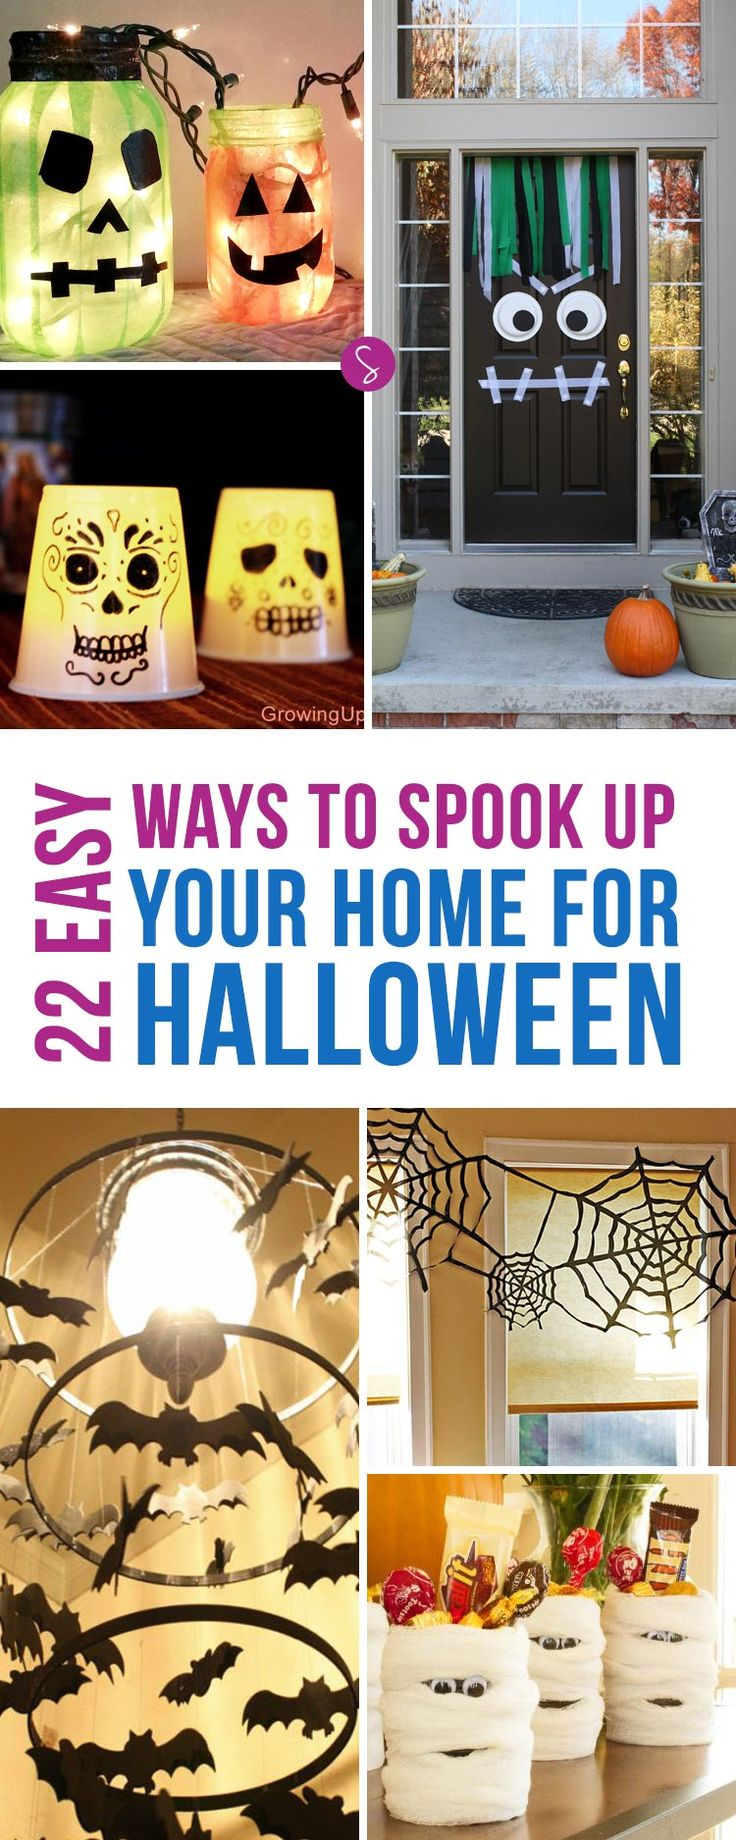 turn your home spooky with these easy halloween decorations for kids